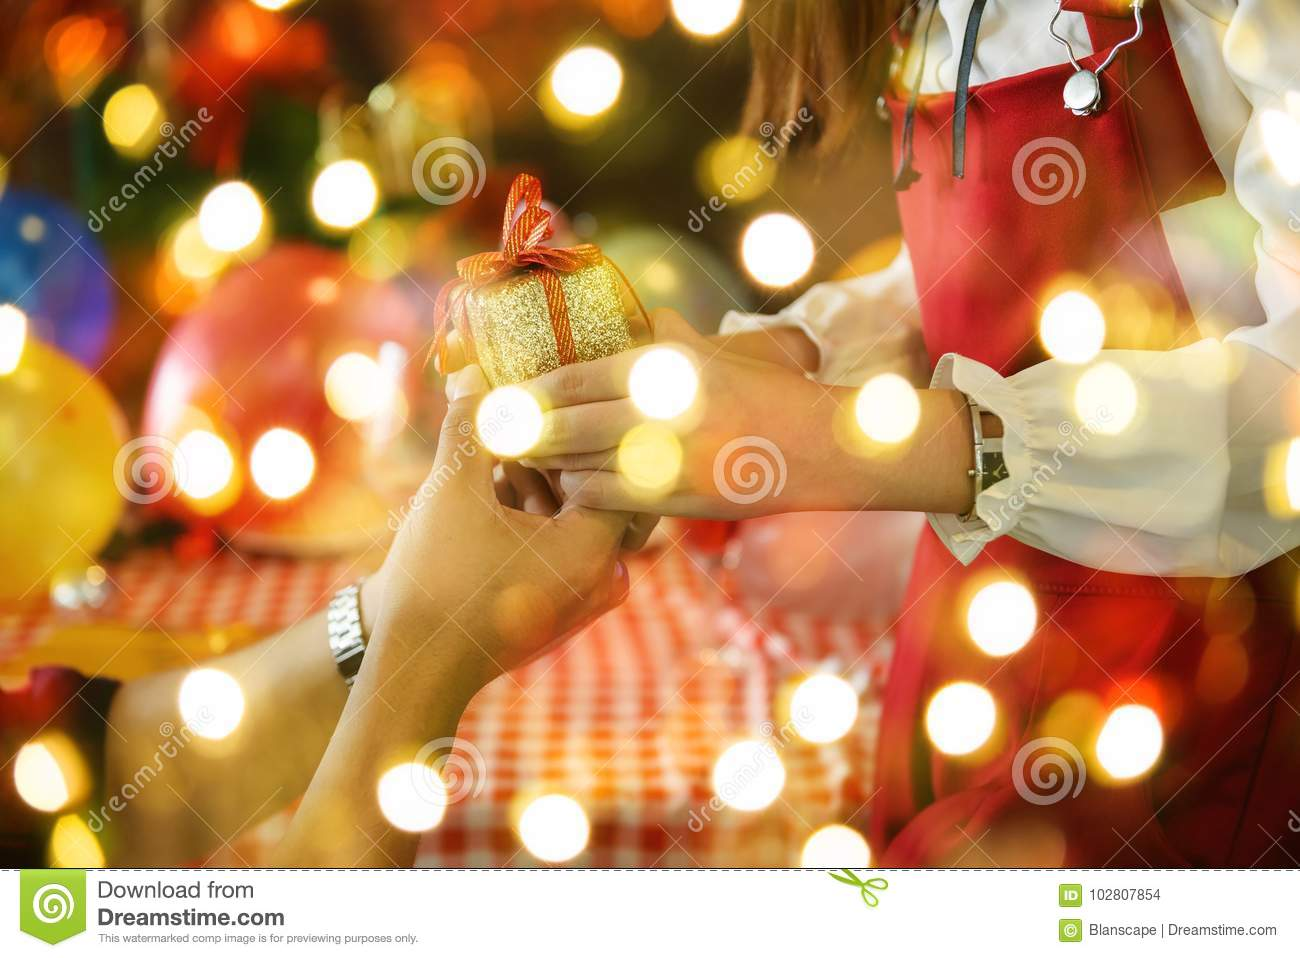 XMas gift and light bokeh stock photo. Image of gift - 102807854